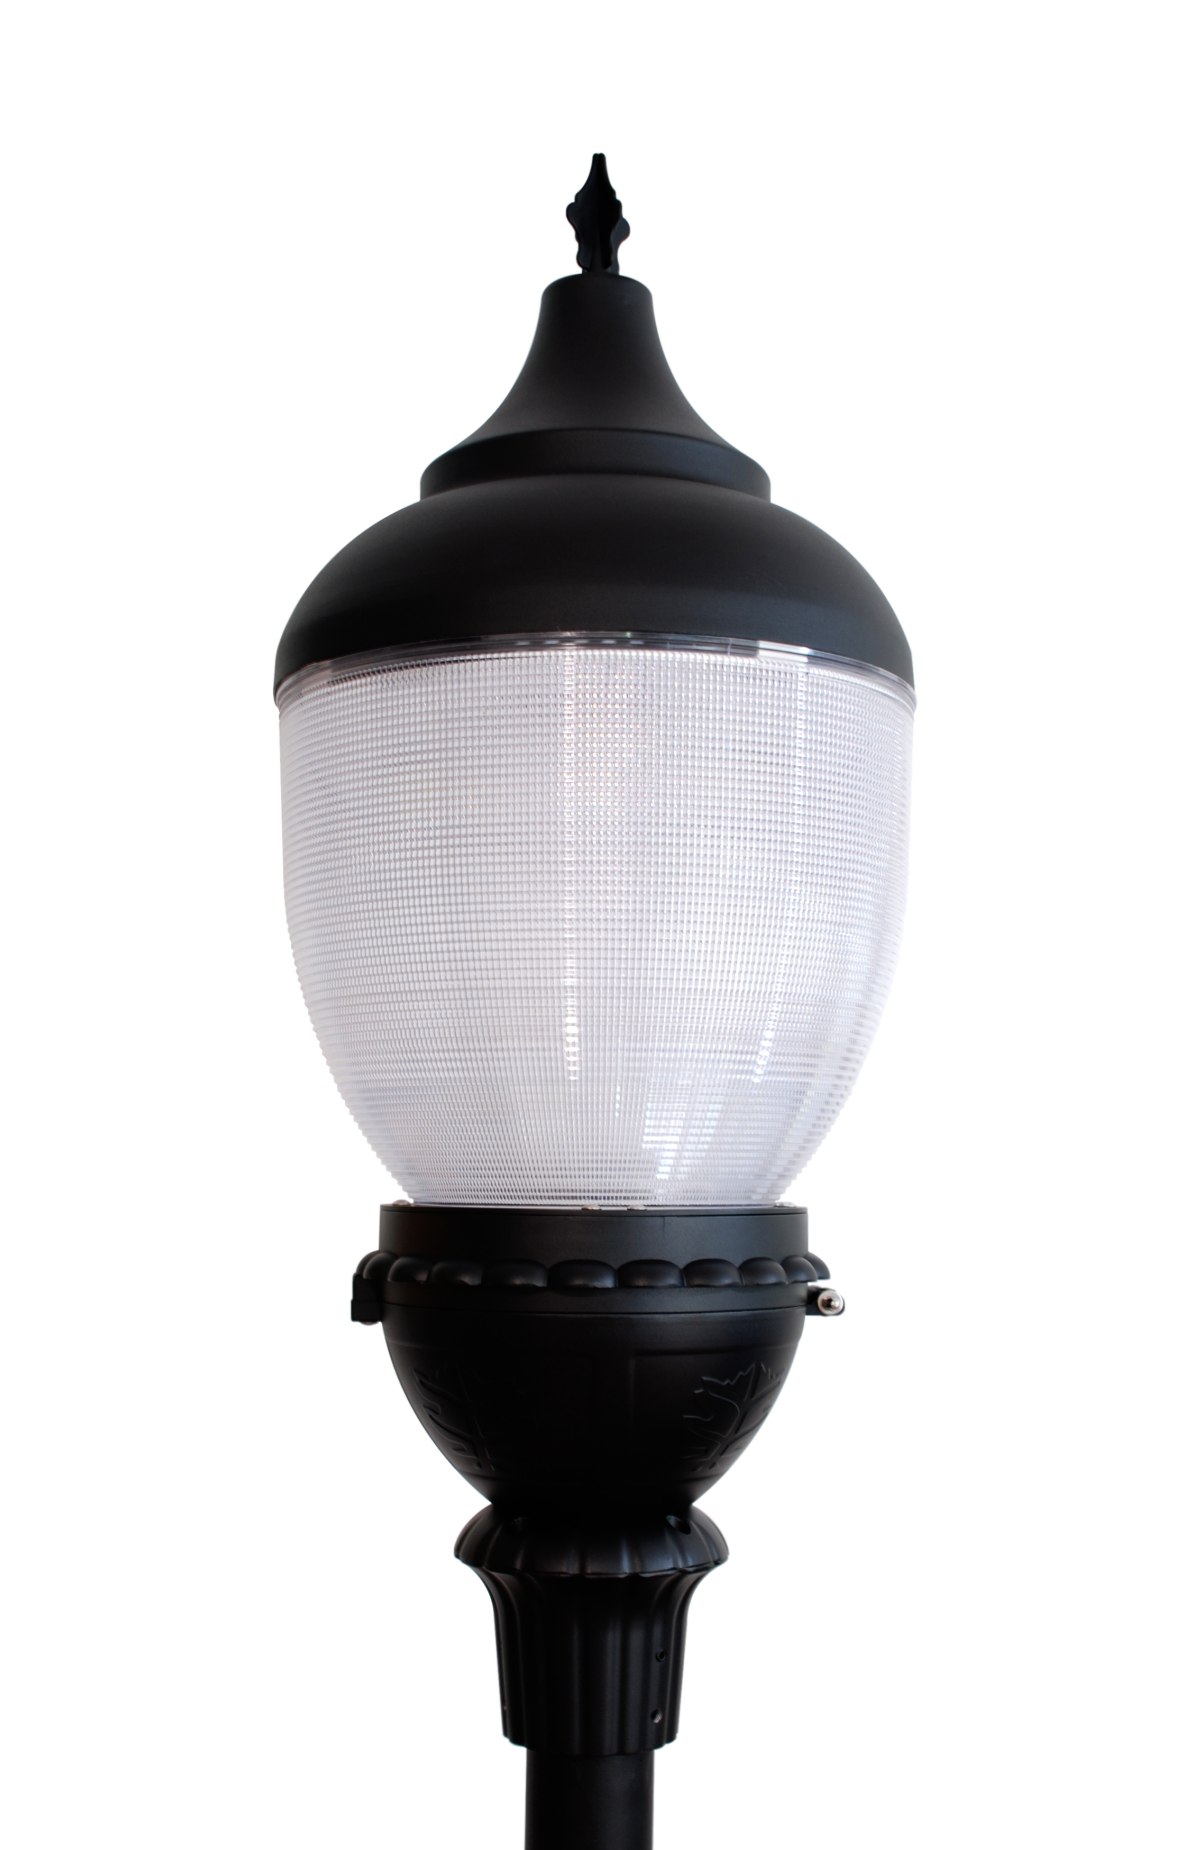 Duke Light S Led Pt 6312 Series Classic Americana Post Top Acorn Designed For Superior Photometric Performance And Architectural A Acorn Lights Led Post Lights